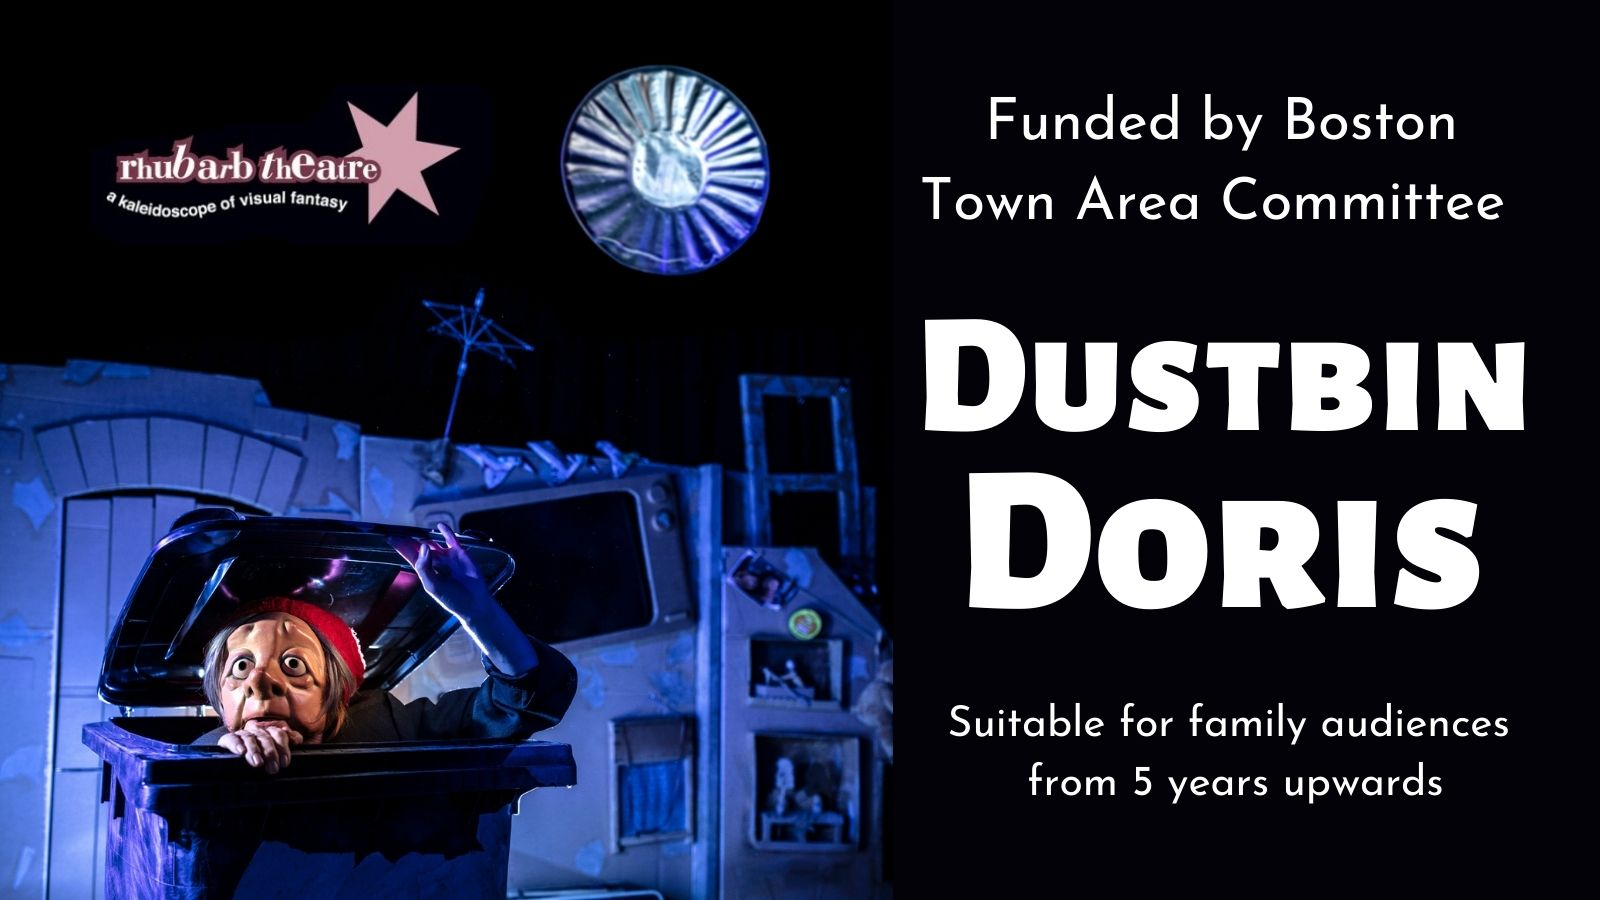 Boston Town Area Committee helps to fund Rhubarb Theatre's Dustbin Doris